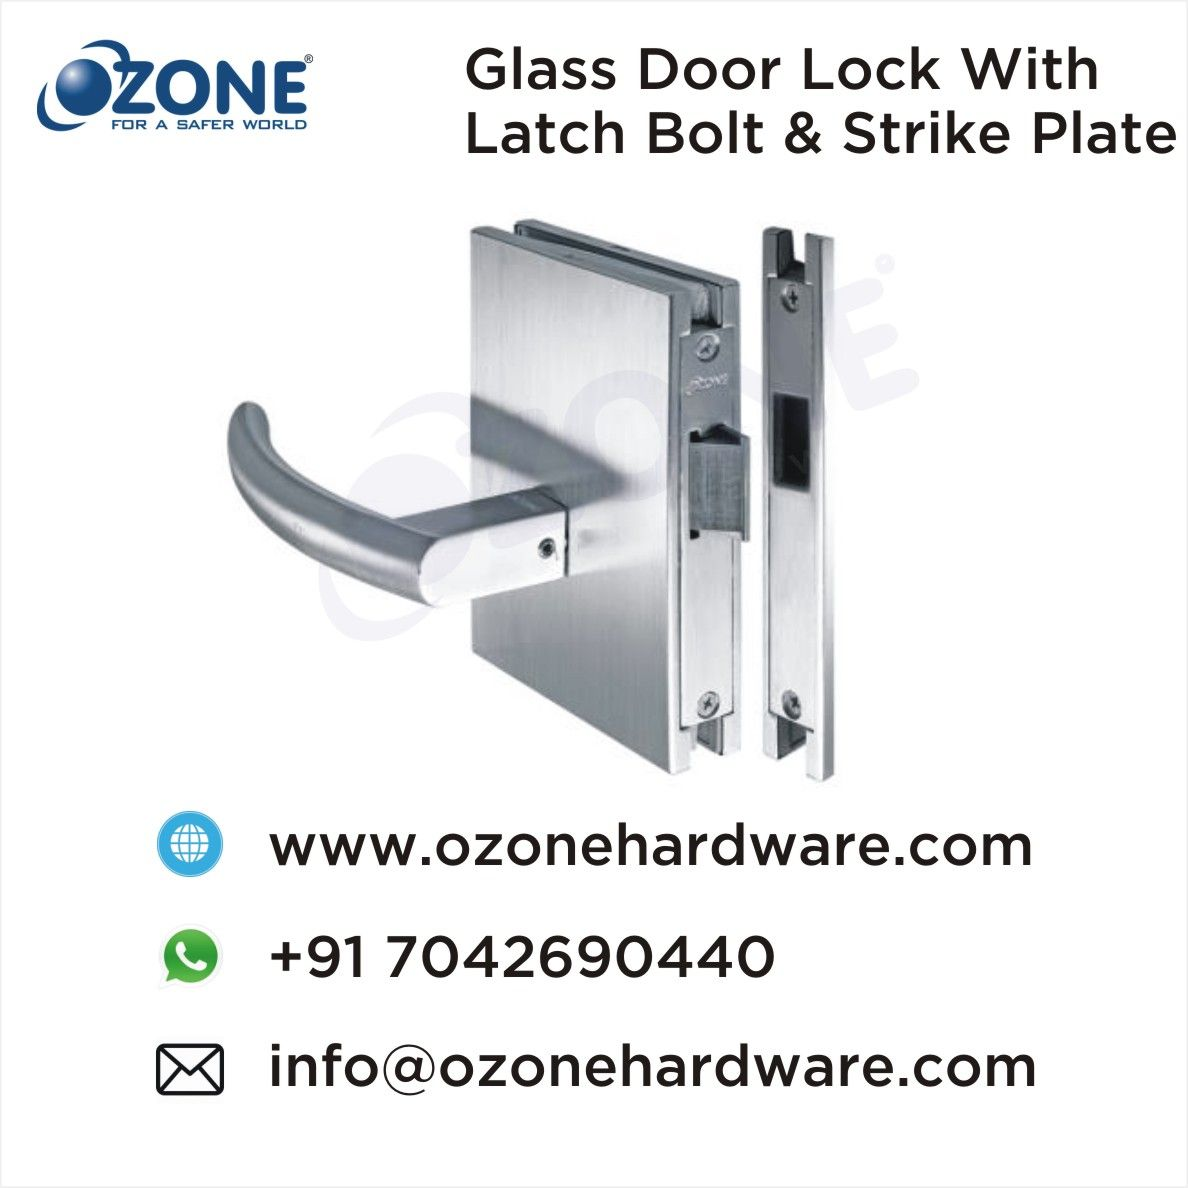 Glass Door Lock With Latch Bolt Strike Plate Stainless Steel Locks For Glassdoors Glassdoor Locks Door Lock Glass Door Lock Glass Door Latches